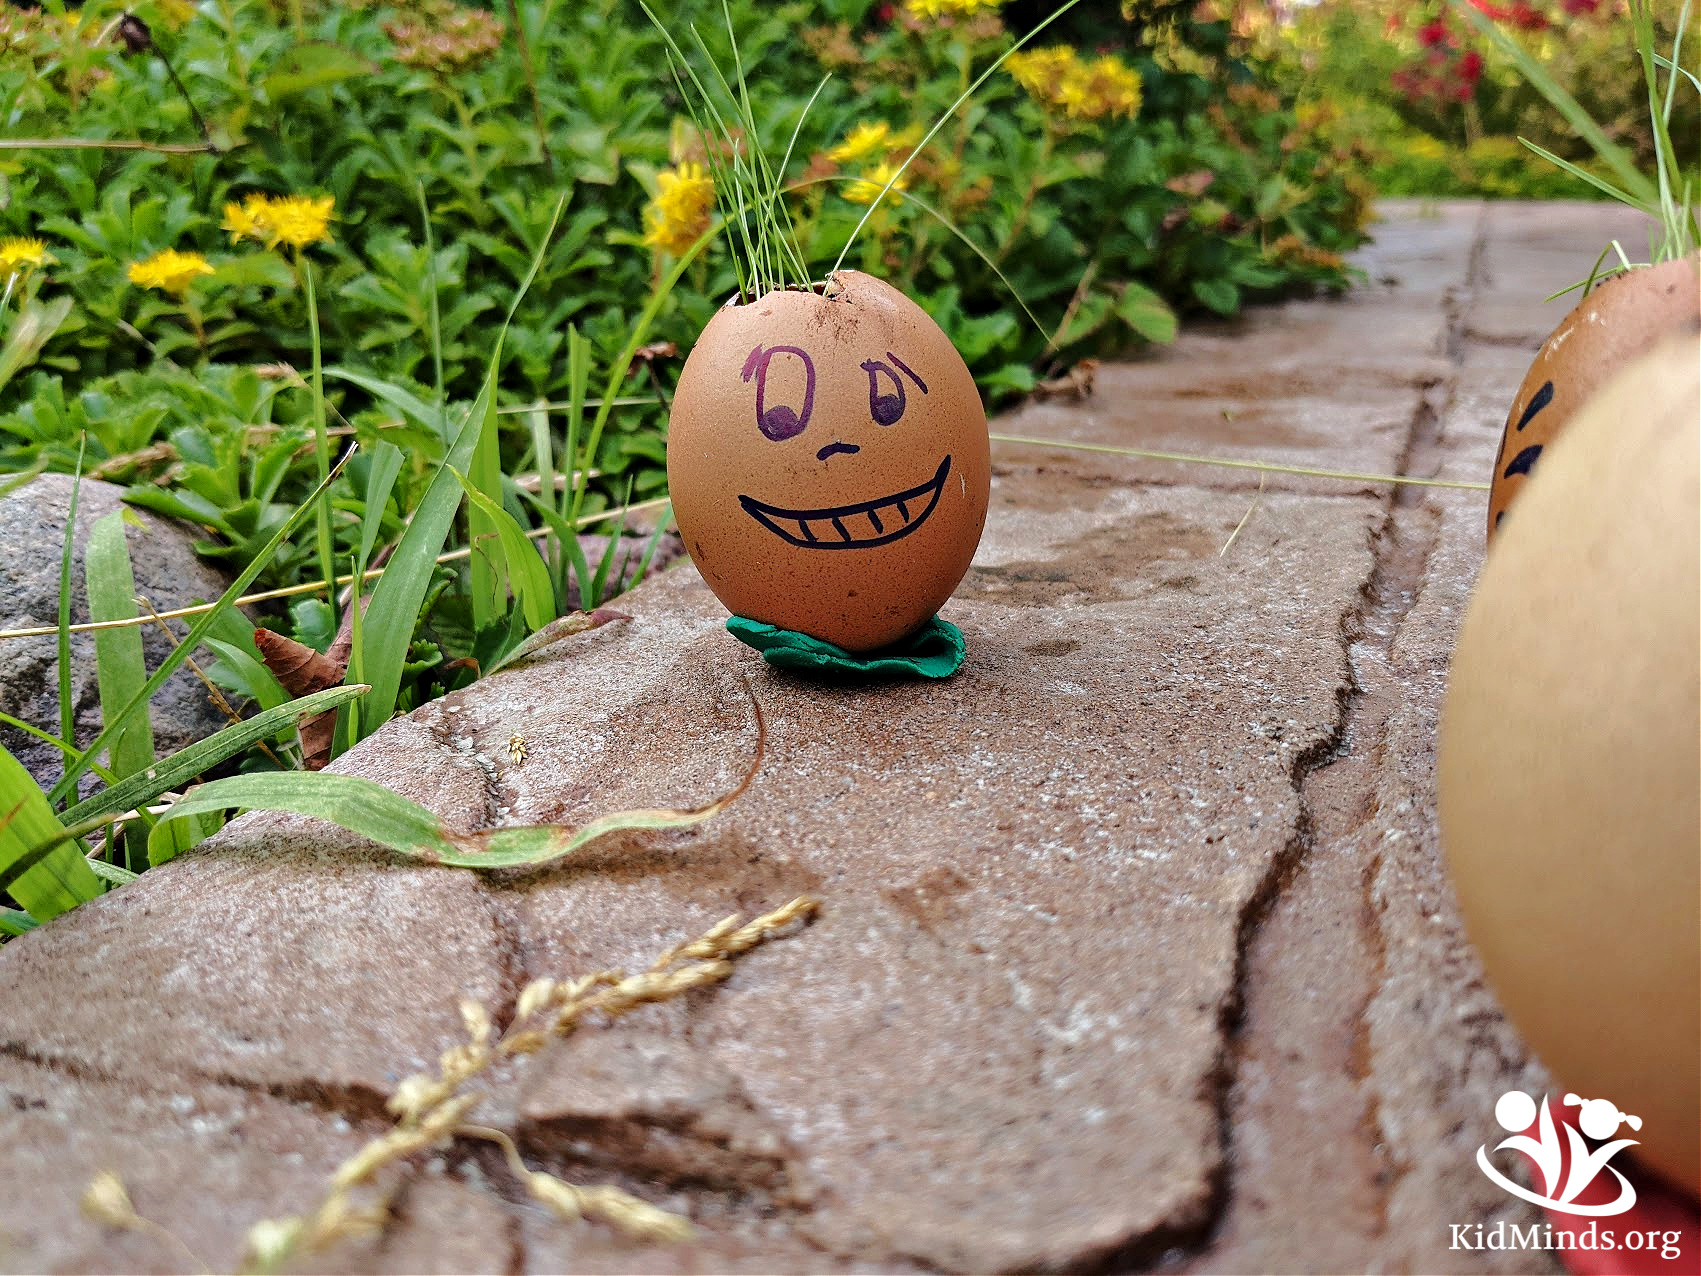 Growing seeds in eggshells is a fun STEM activity. It's a perfect project for spring, summer, Earth Day, or any time you feel like growing something green. #kidsactivities #eggscience #seedscience #homeschooling